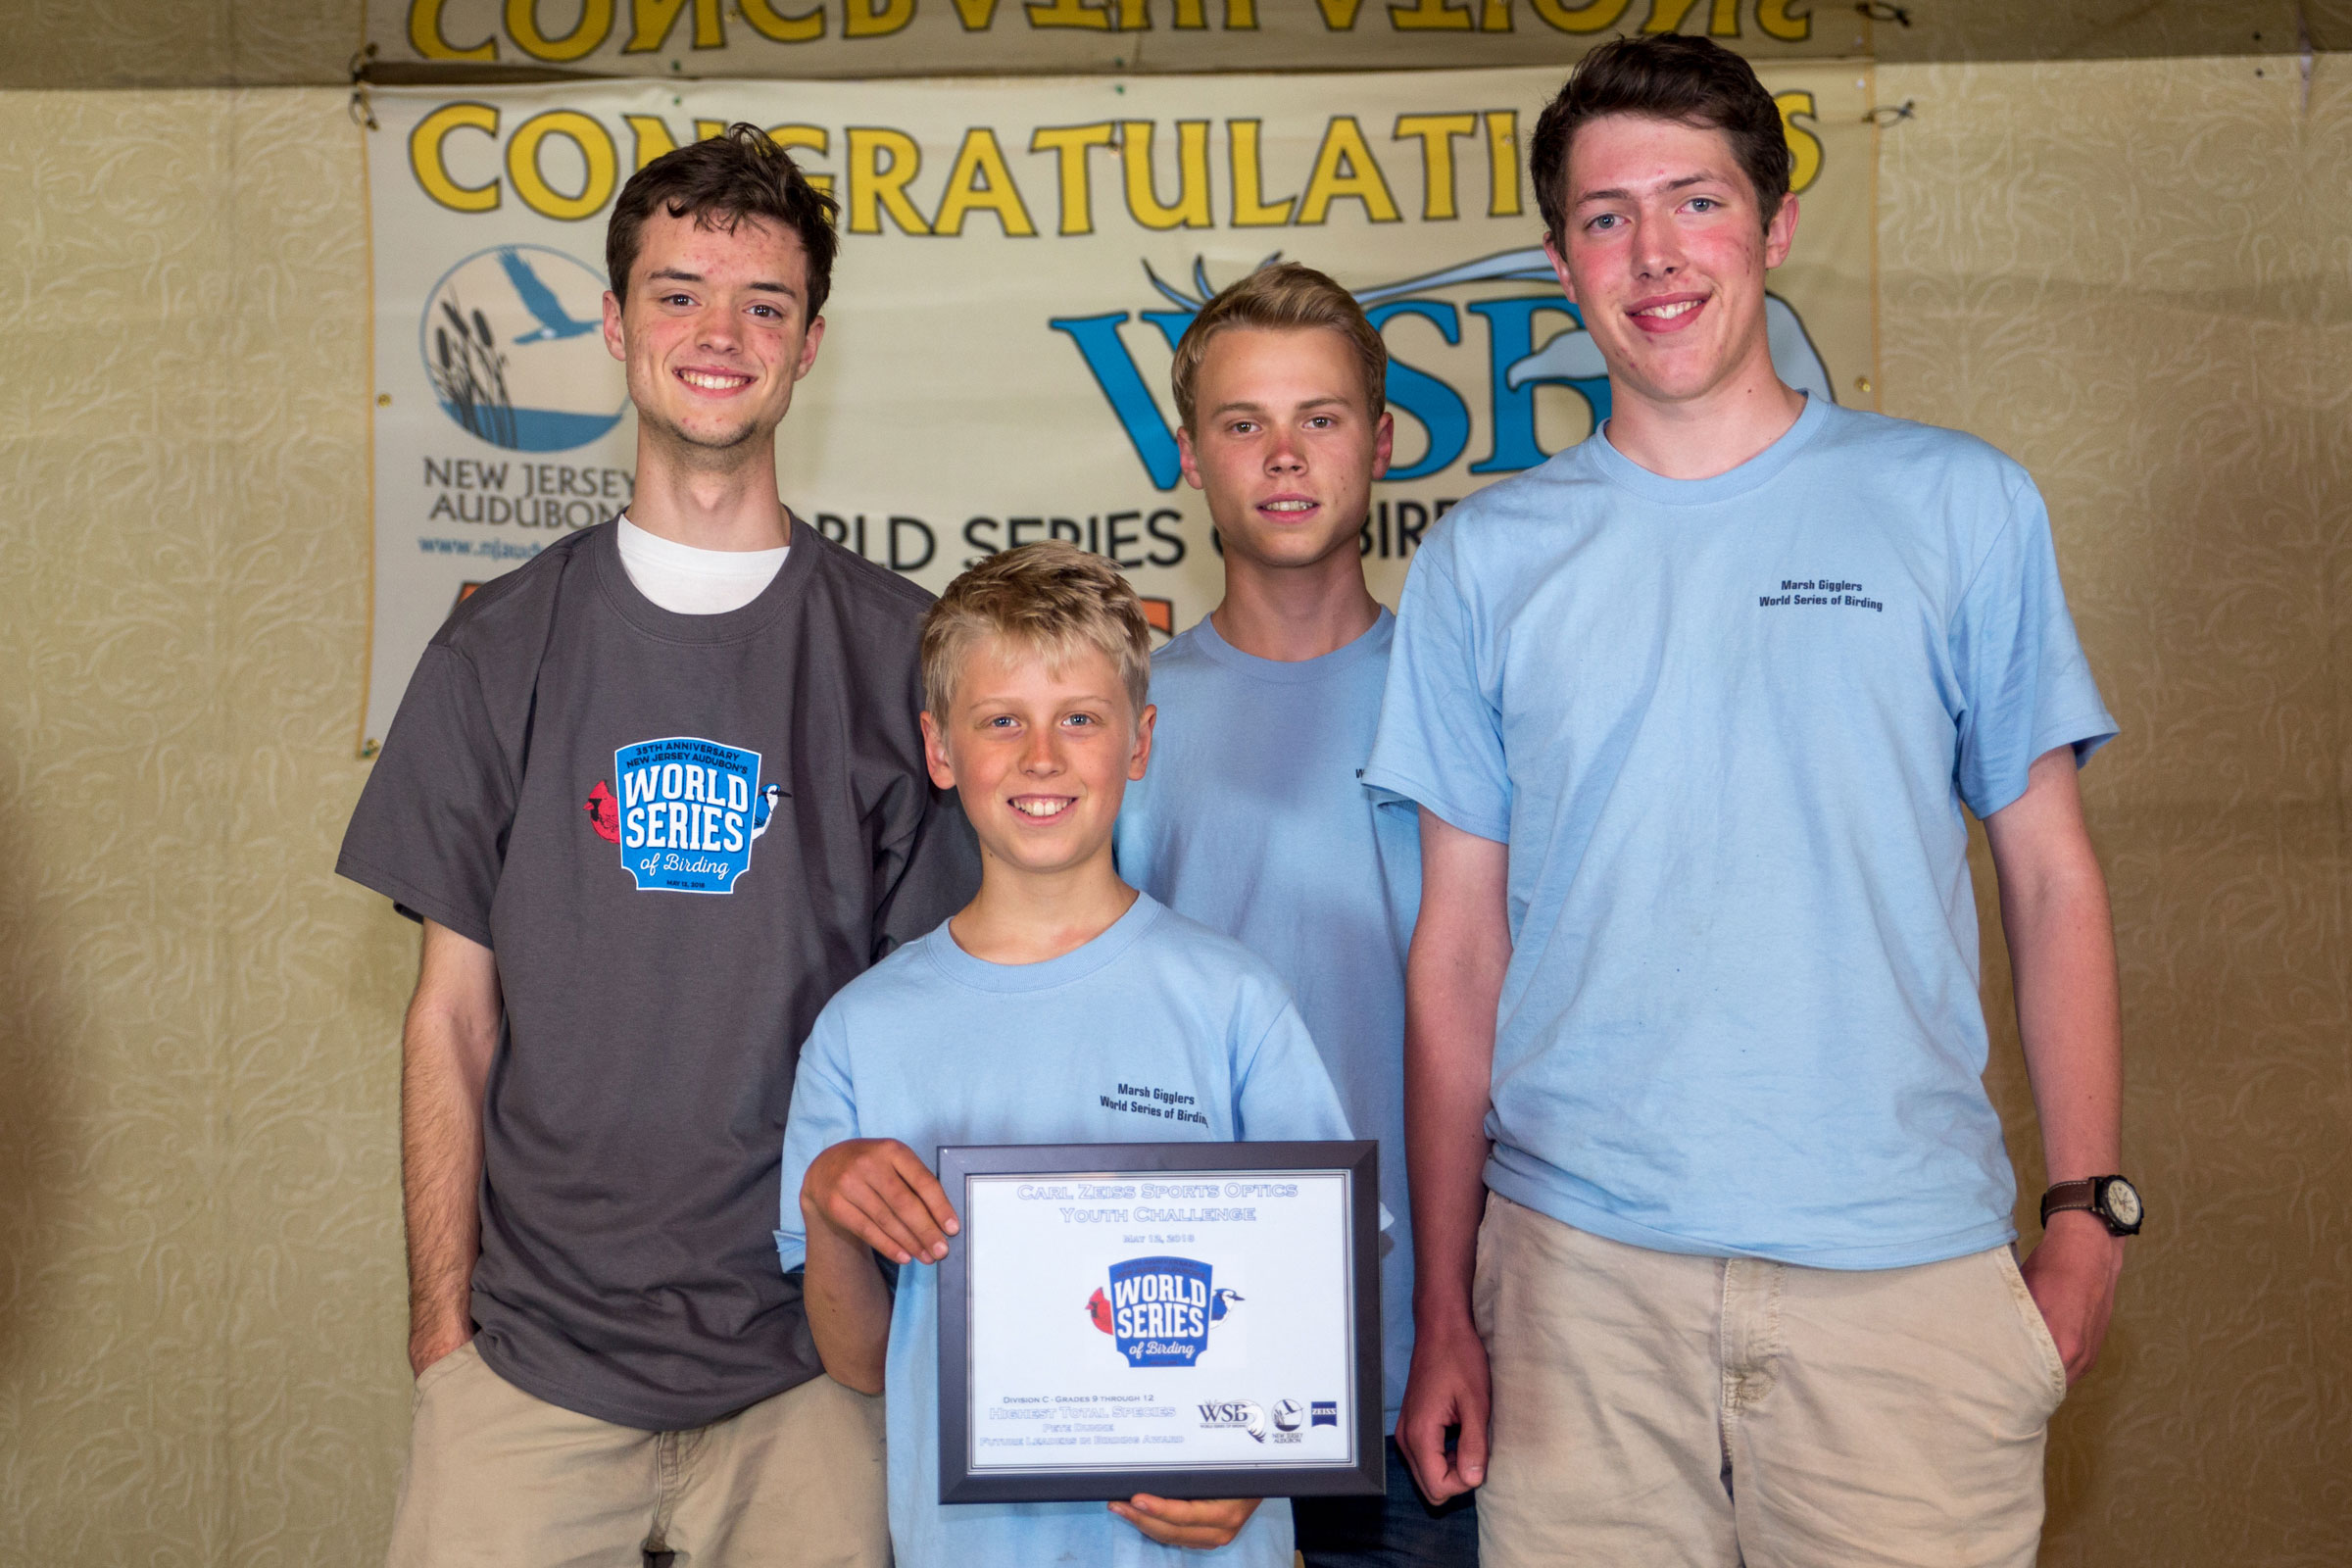 Joshua Heiser, Jonathan Irons, Daniel Irons, and Patrick Newcombe hold up their winning plaque at the awards brunch at the Cape May Inn. Camilla Cerea/Audubon